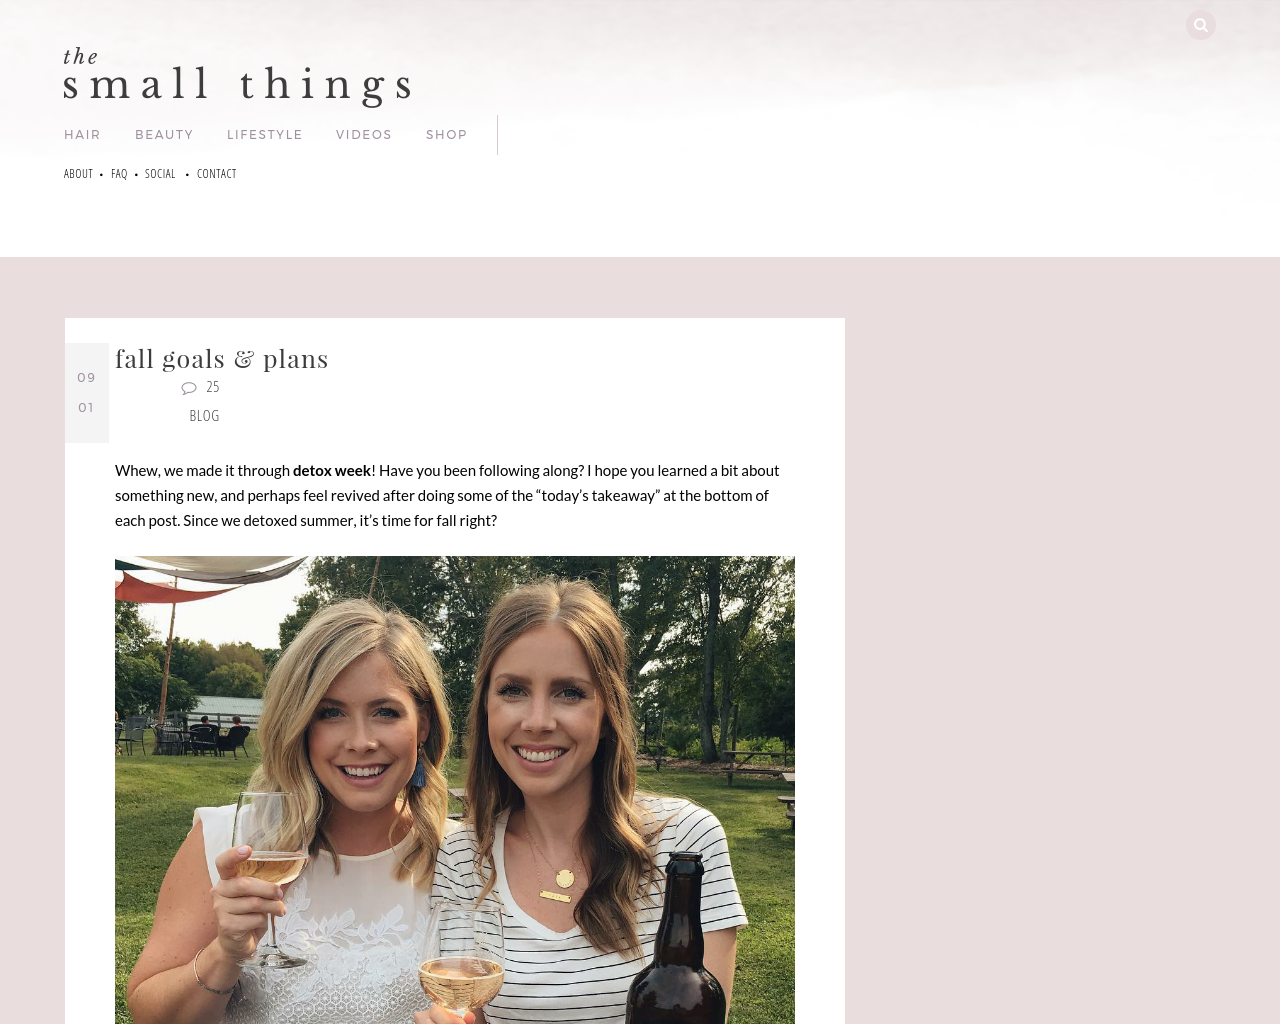 The-Small-Things-Blog-Advertising-Reviews-Pricing